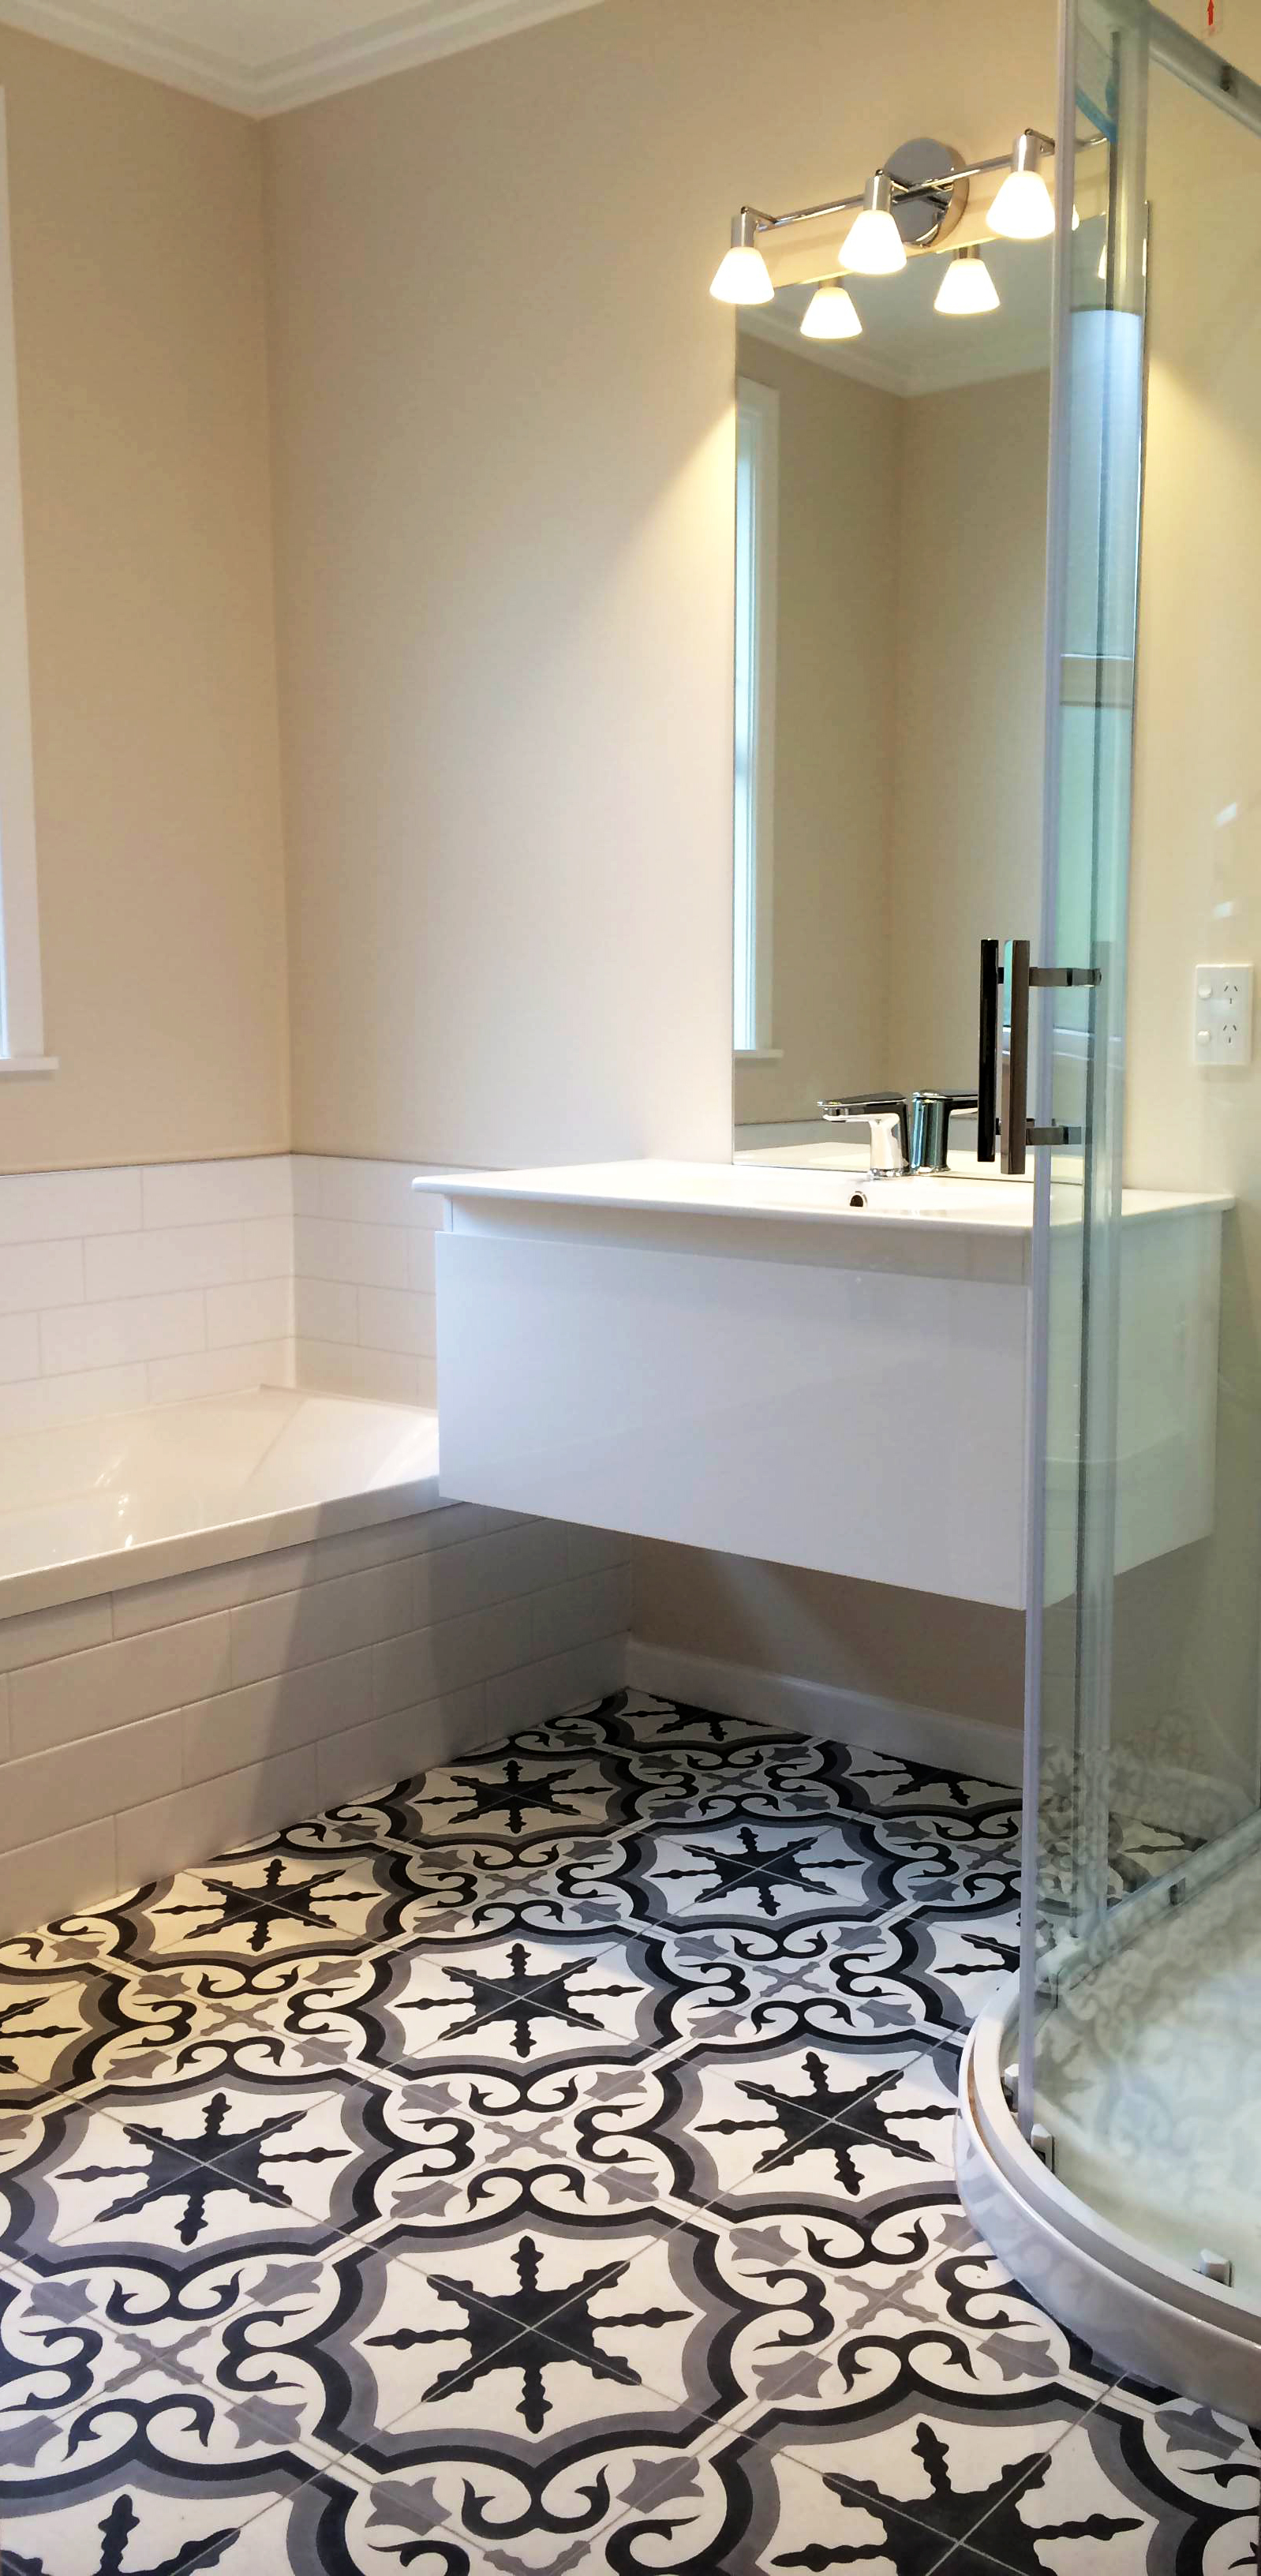 MOABELL Bathroom renovation in Whanganui